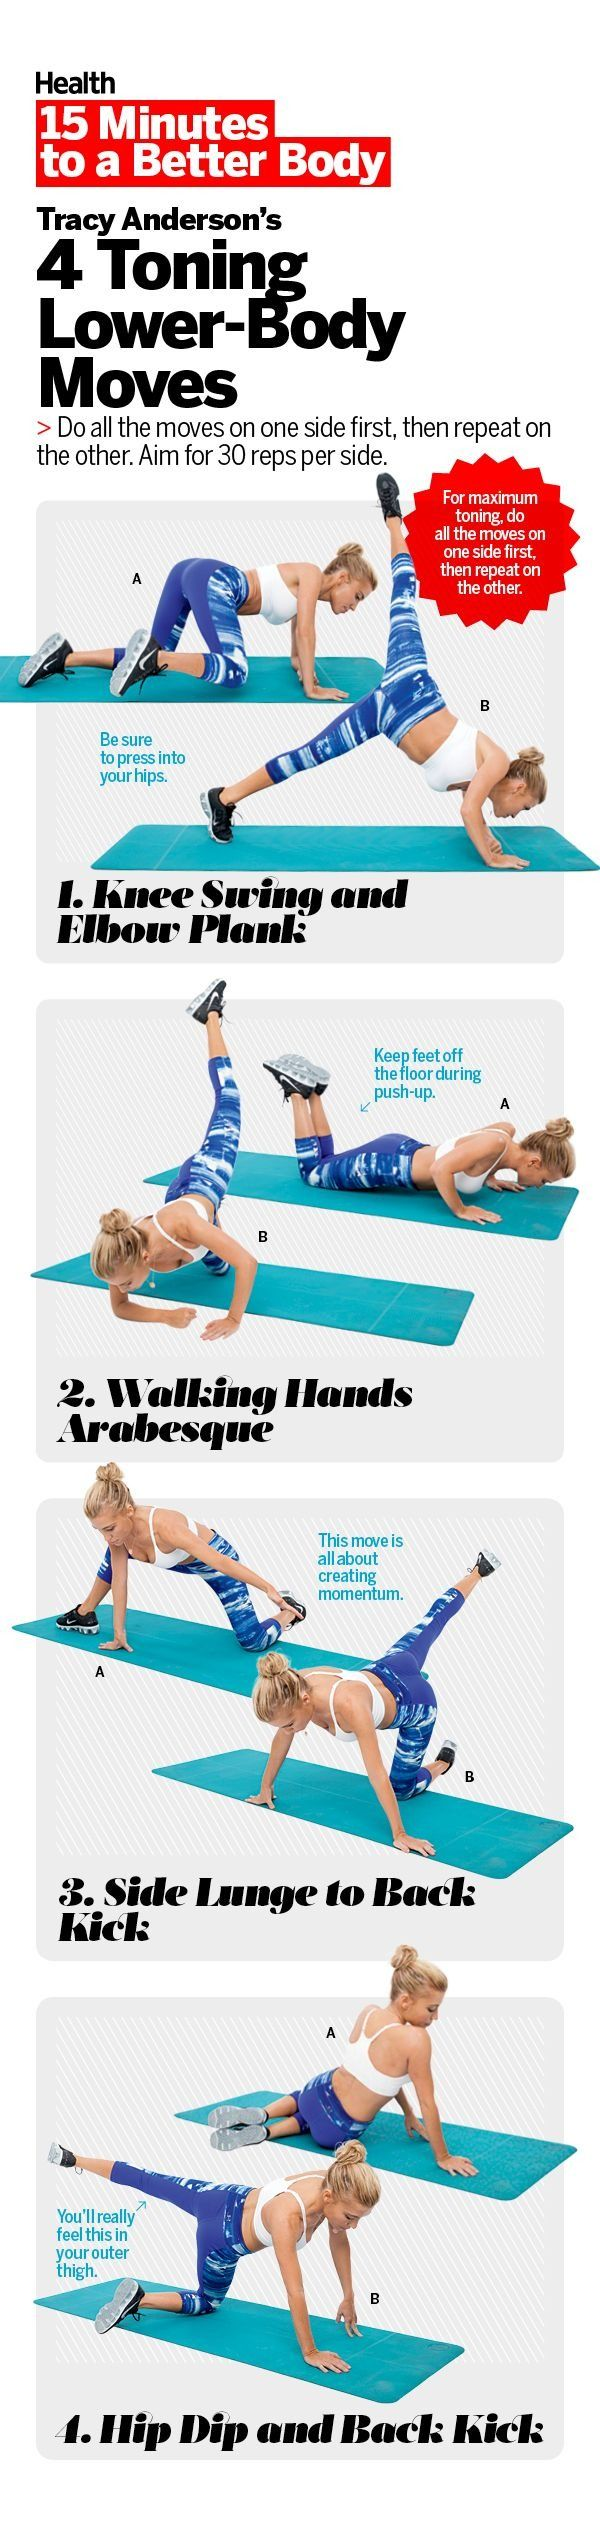 Squats and lunges aren't the only moves that will get your lower body in top form. In this video, Health contributor Tracy Anderson demonstrates 4 exercises that target those tough-to-reach muscles that help you pull in your stomach, boost your backside, and sculpt your thighs.   Health.com